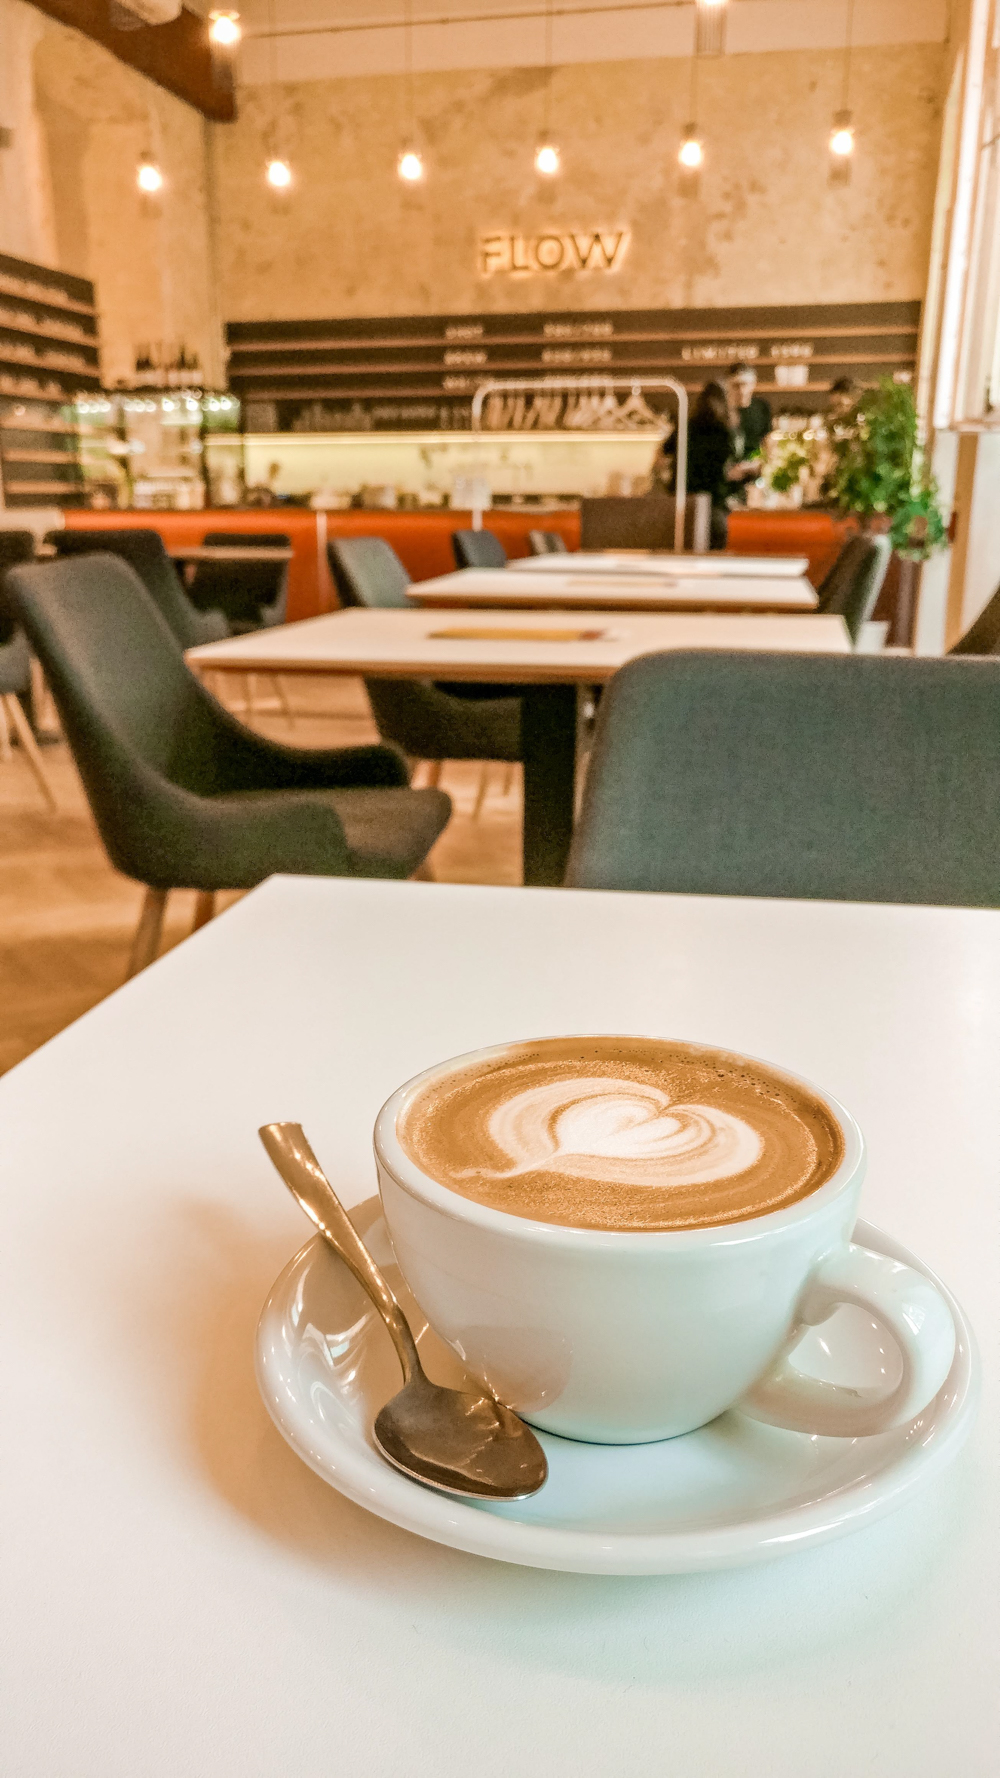 Flat white at Flow Specialty Coffee Bar & Bistro - 10 must-visit stylish specialty coffee shops in Budapest, Hungary   Aliz's Wonderland